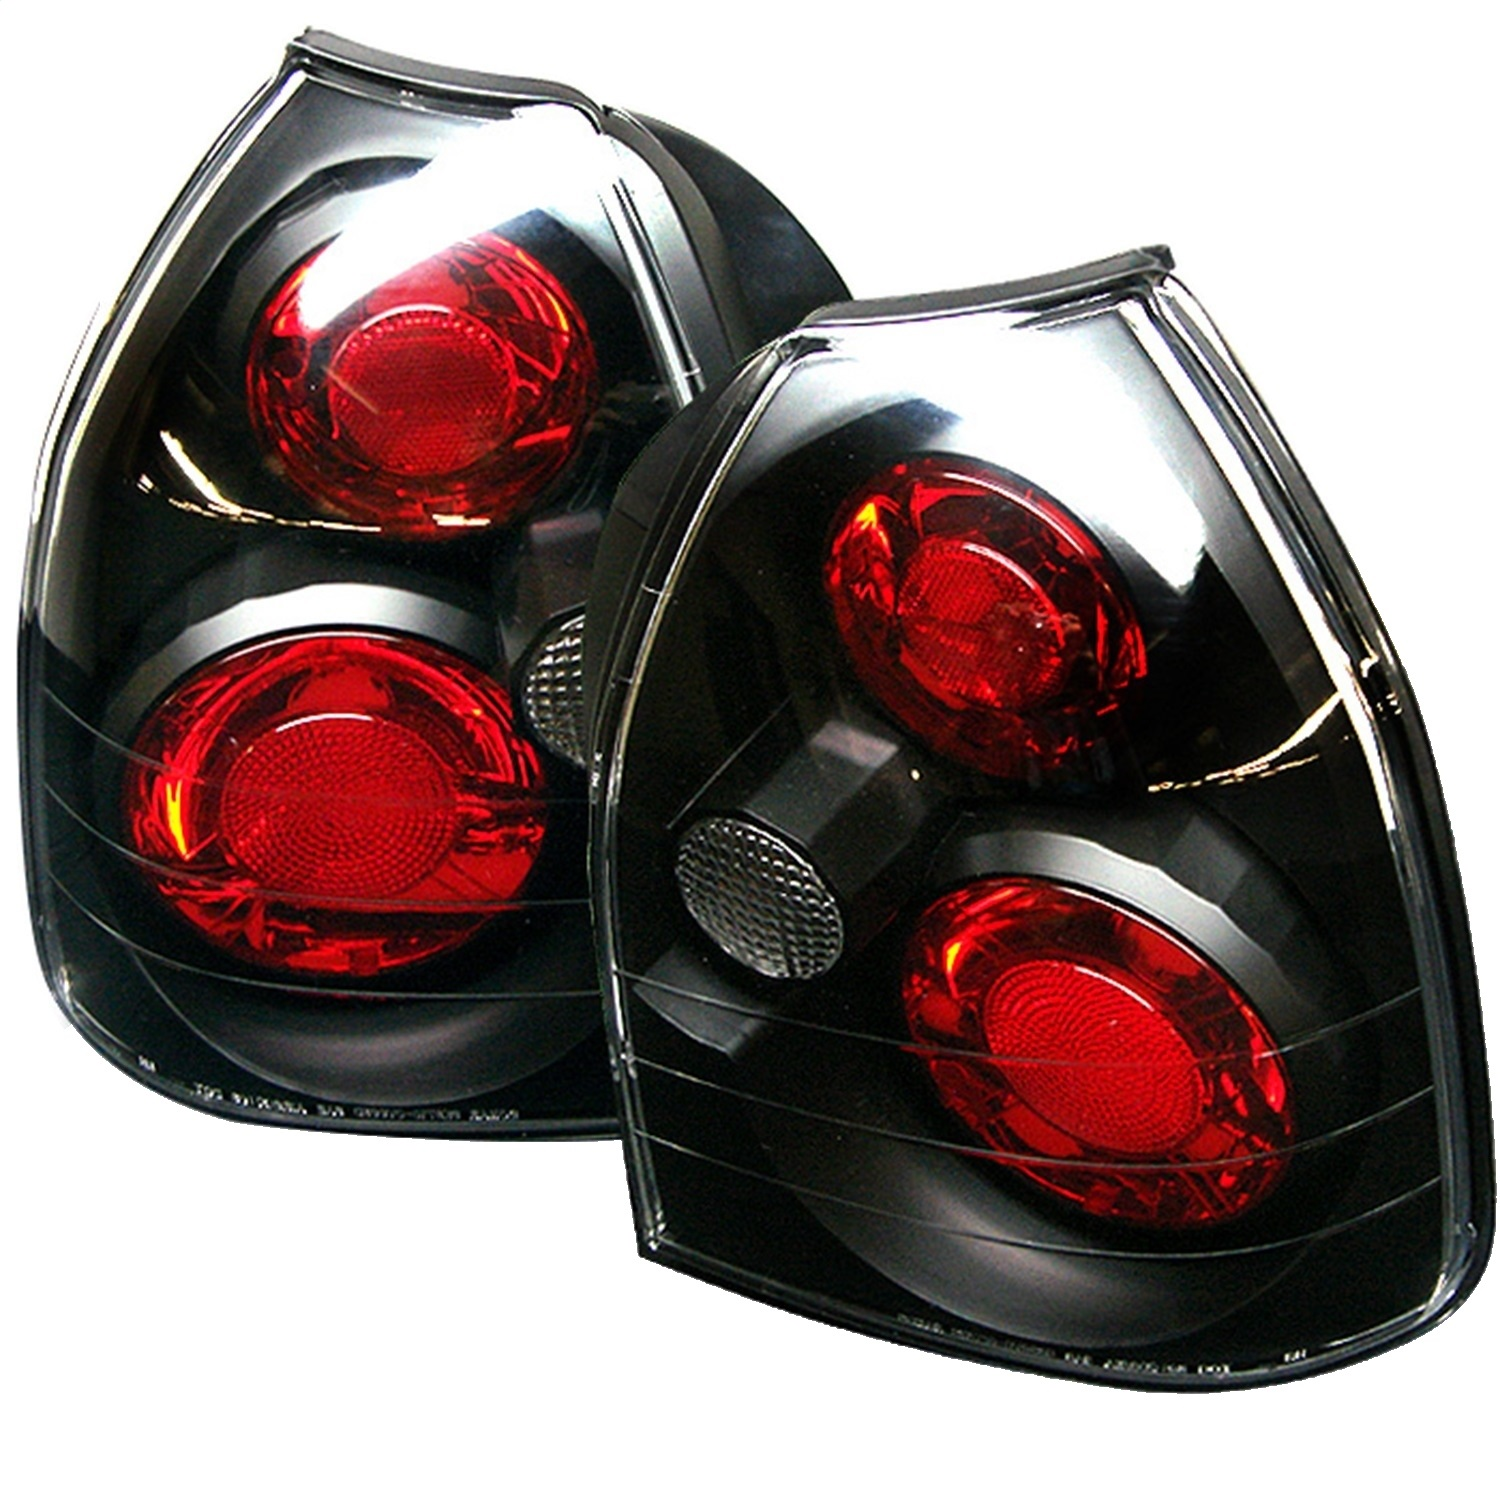 Spyder Auto 5004895 Euro Style Tail Lights Fits 96-00 Civic